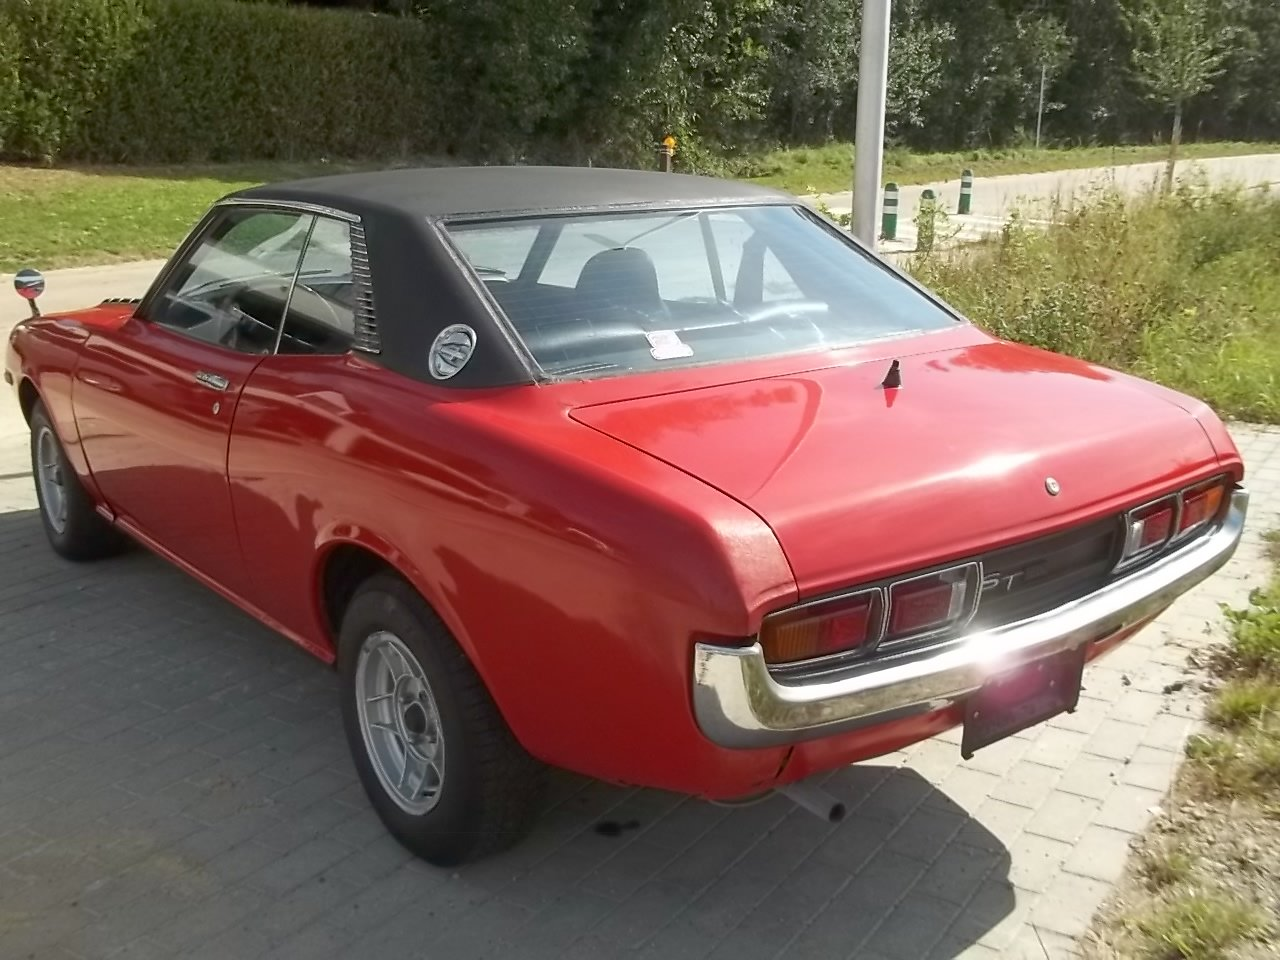 1973 Toyota Celica TA22 1600ST  1 owner from new For Sale (picture 2 of 6)